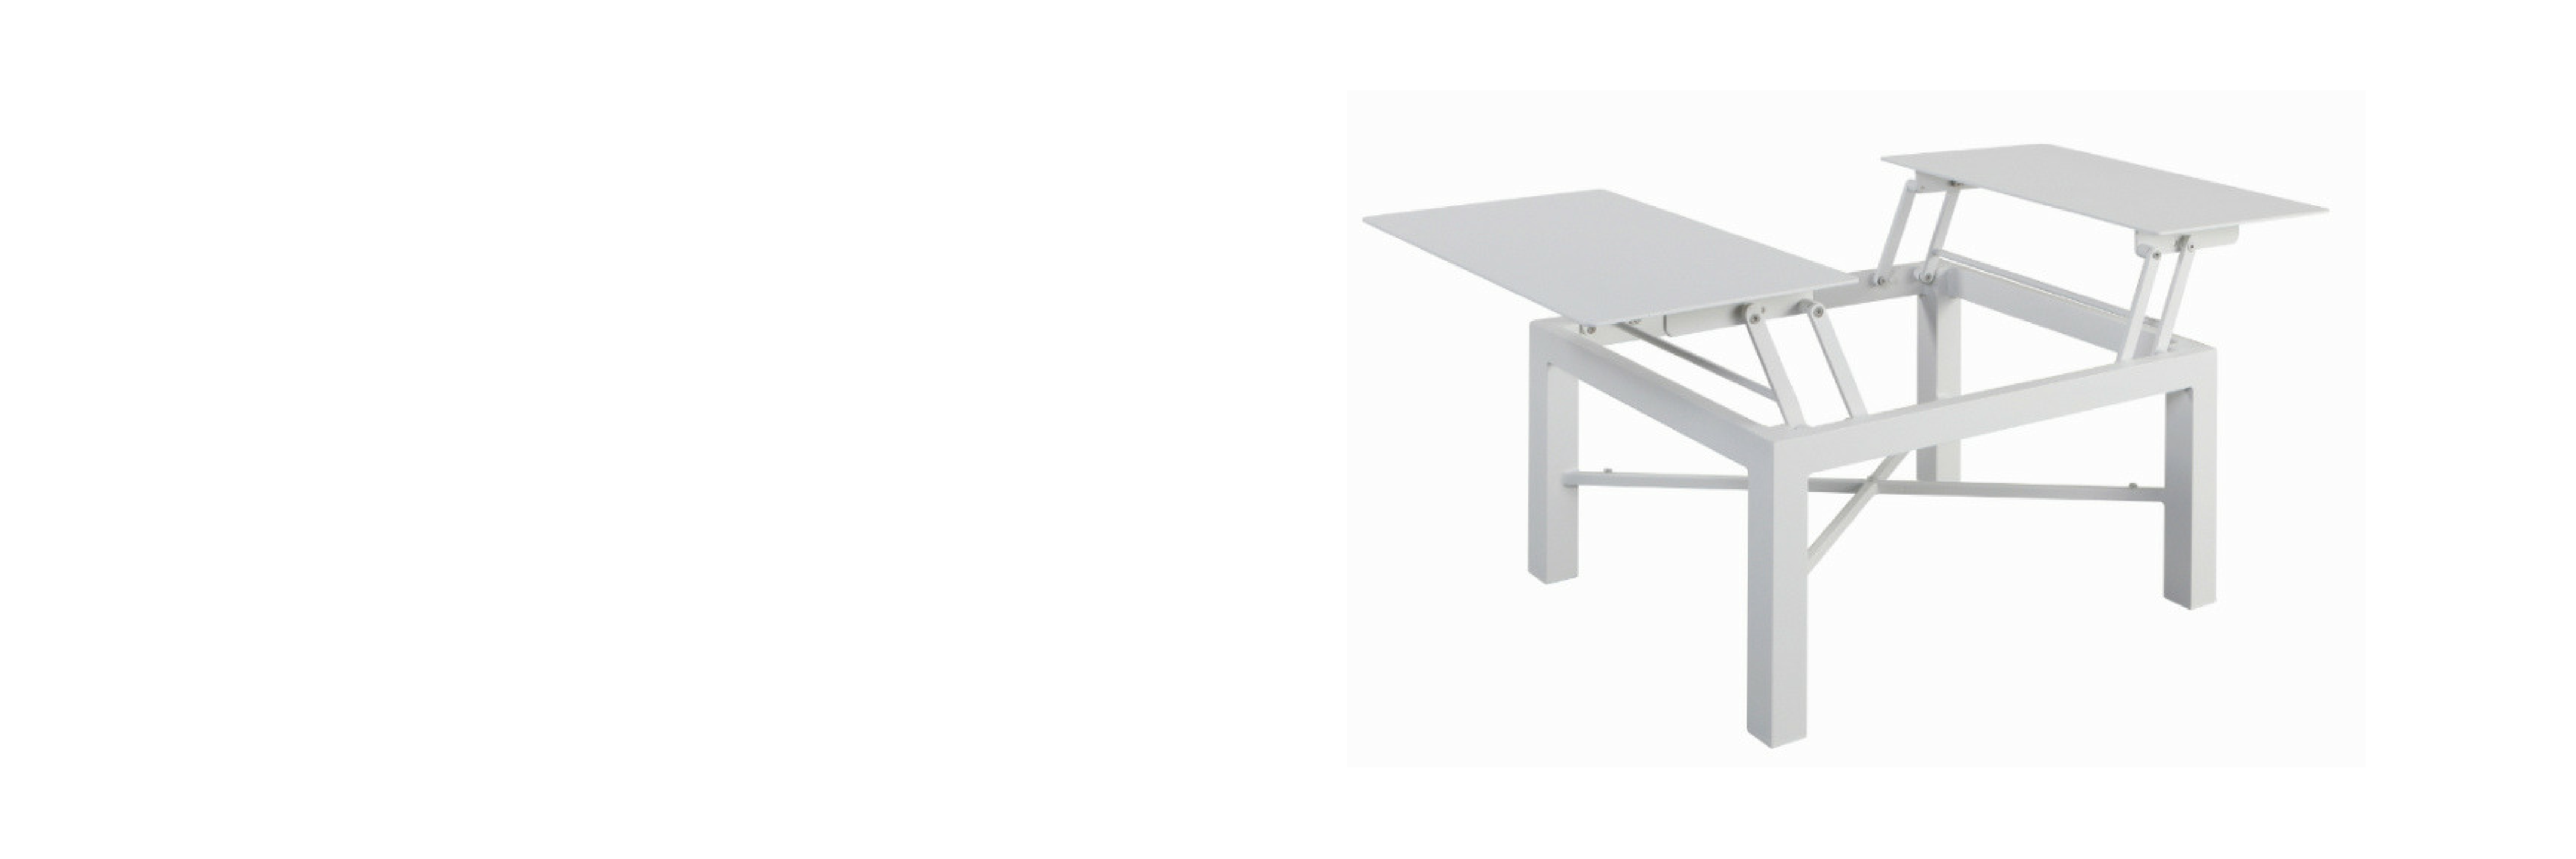 The Fermo Convertible Coffee Table